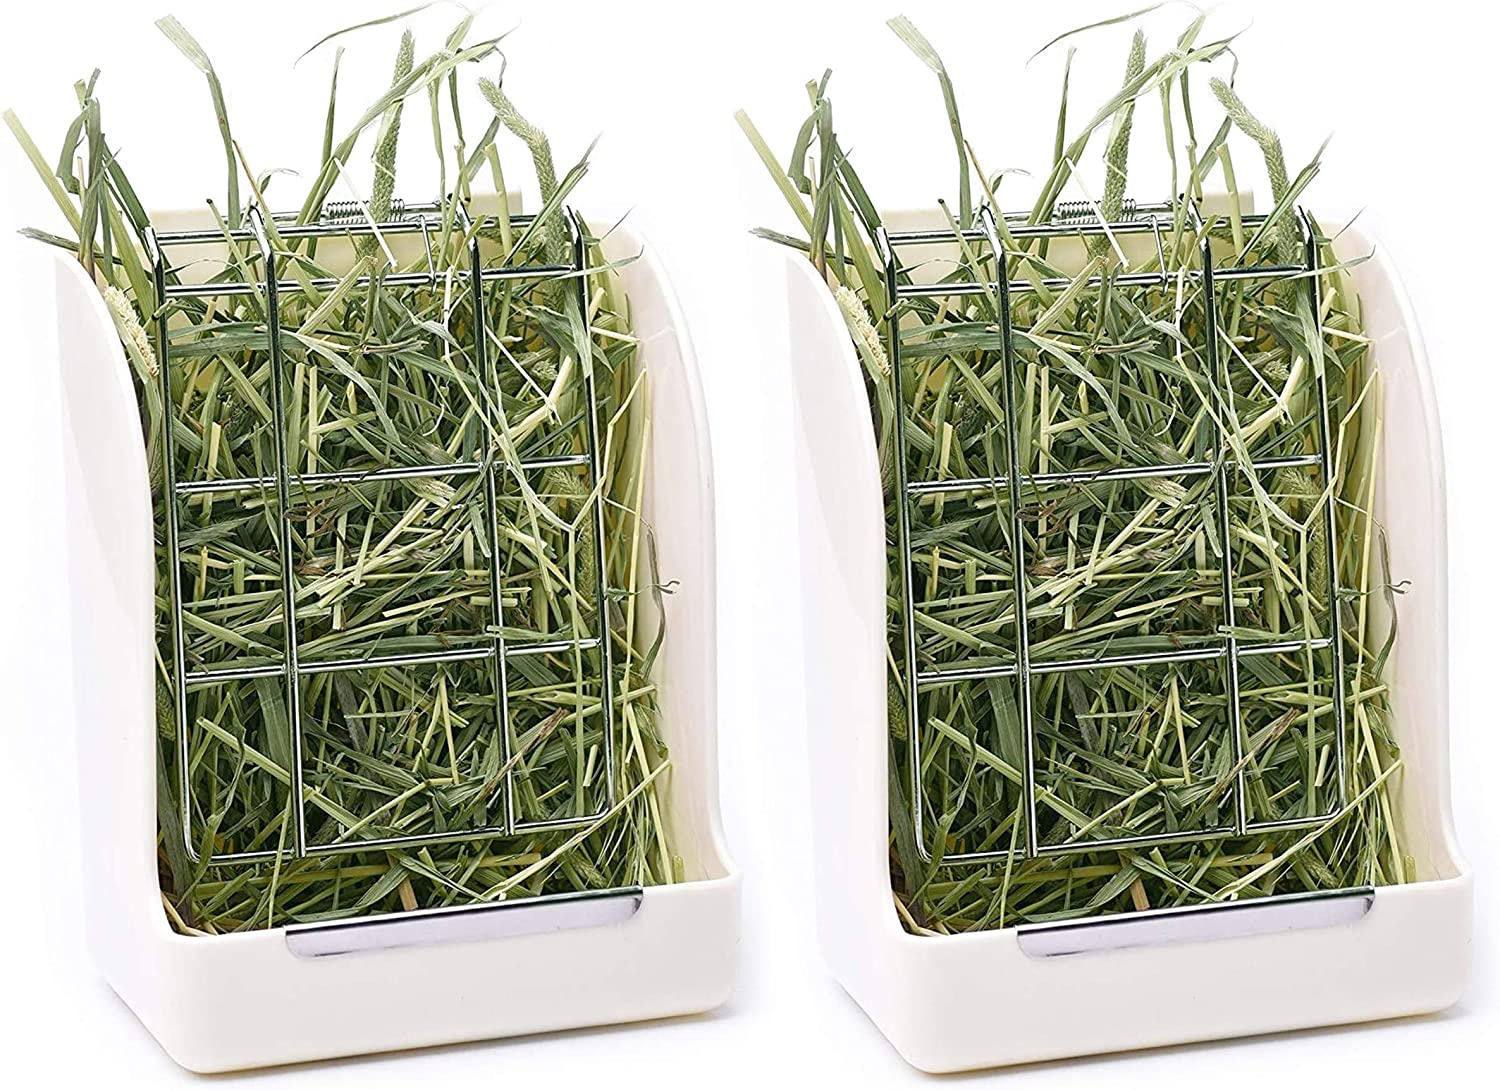 CalPalmy Hay Feeder for Rabbits, Guinea Pigs, and Chinchillas - Minimize Waste and Mess with 5 1/2